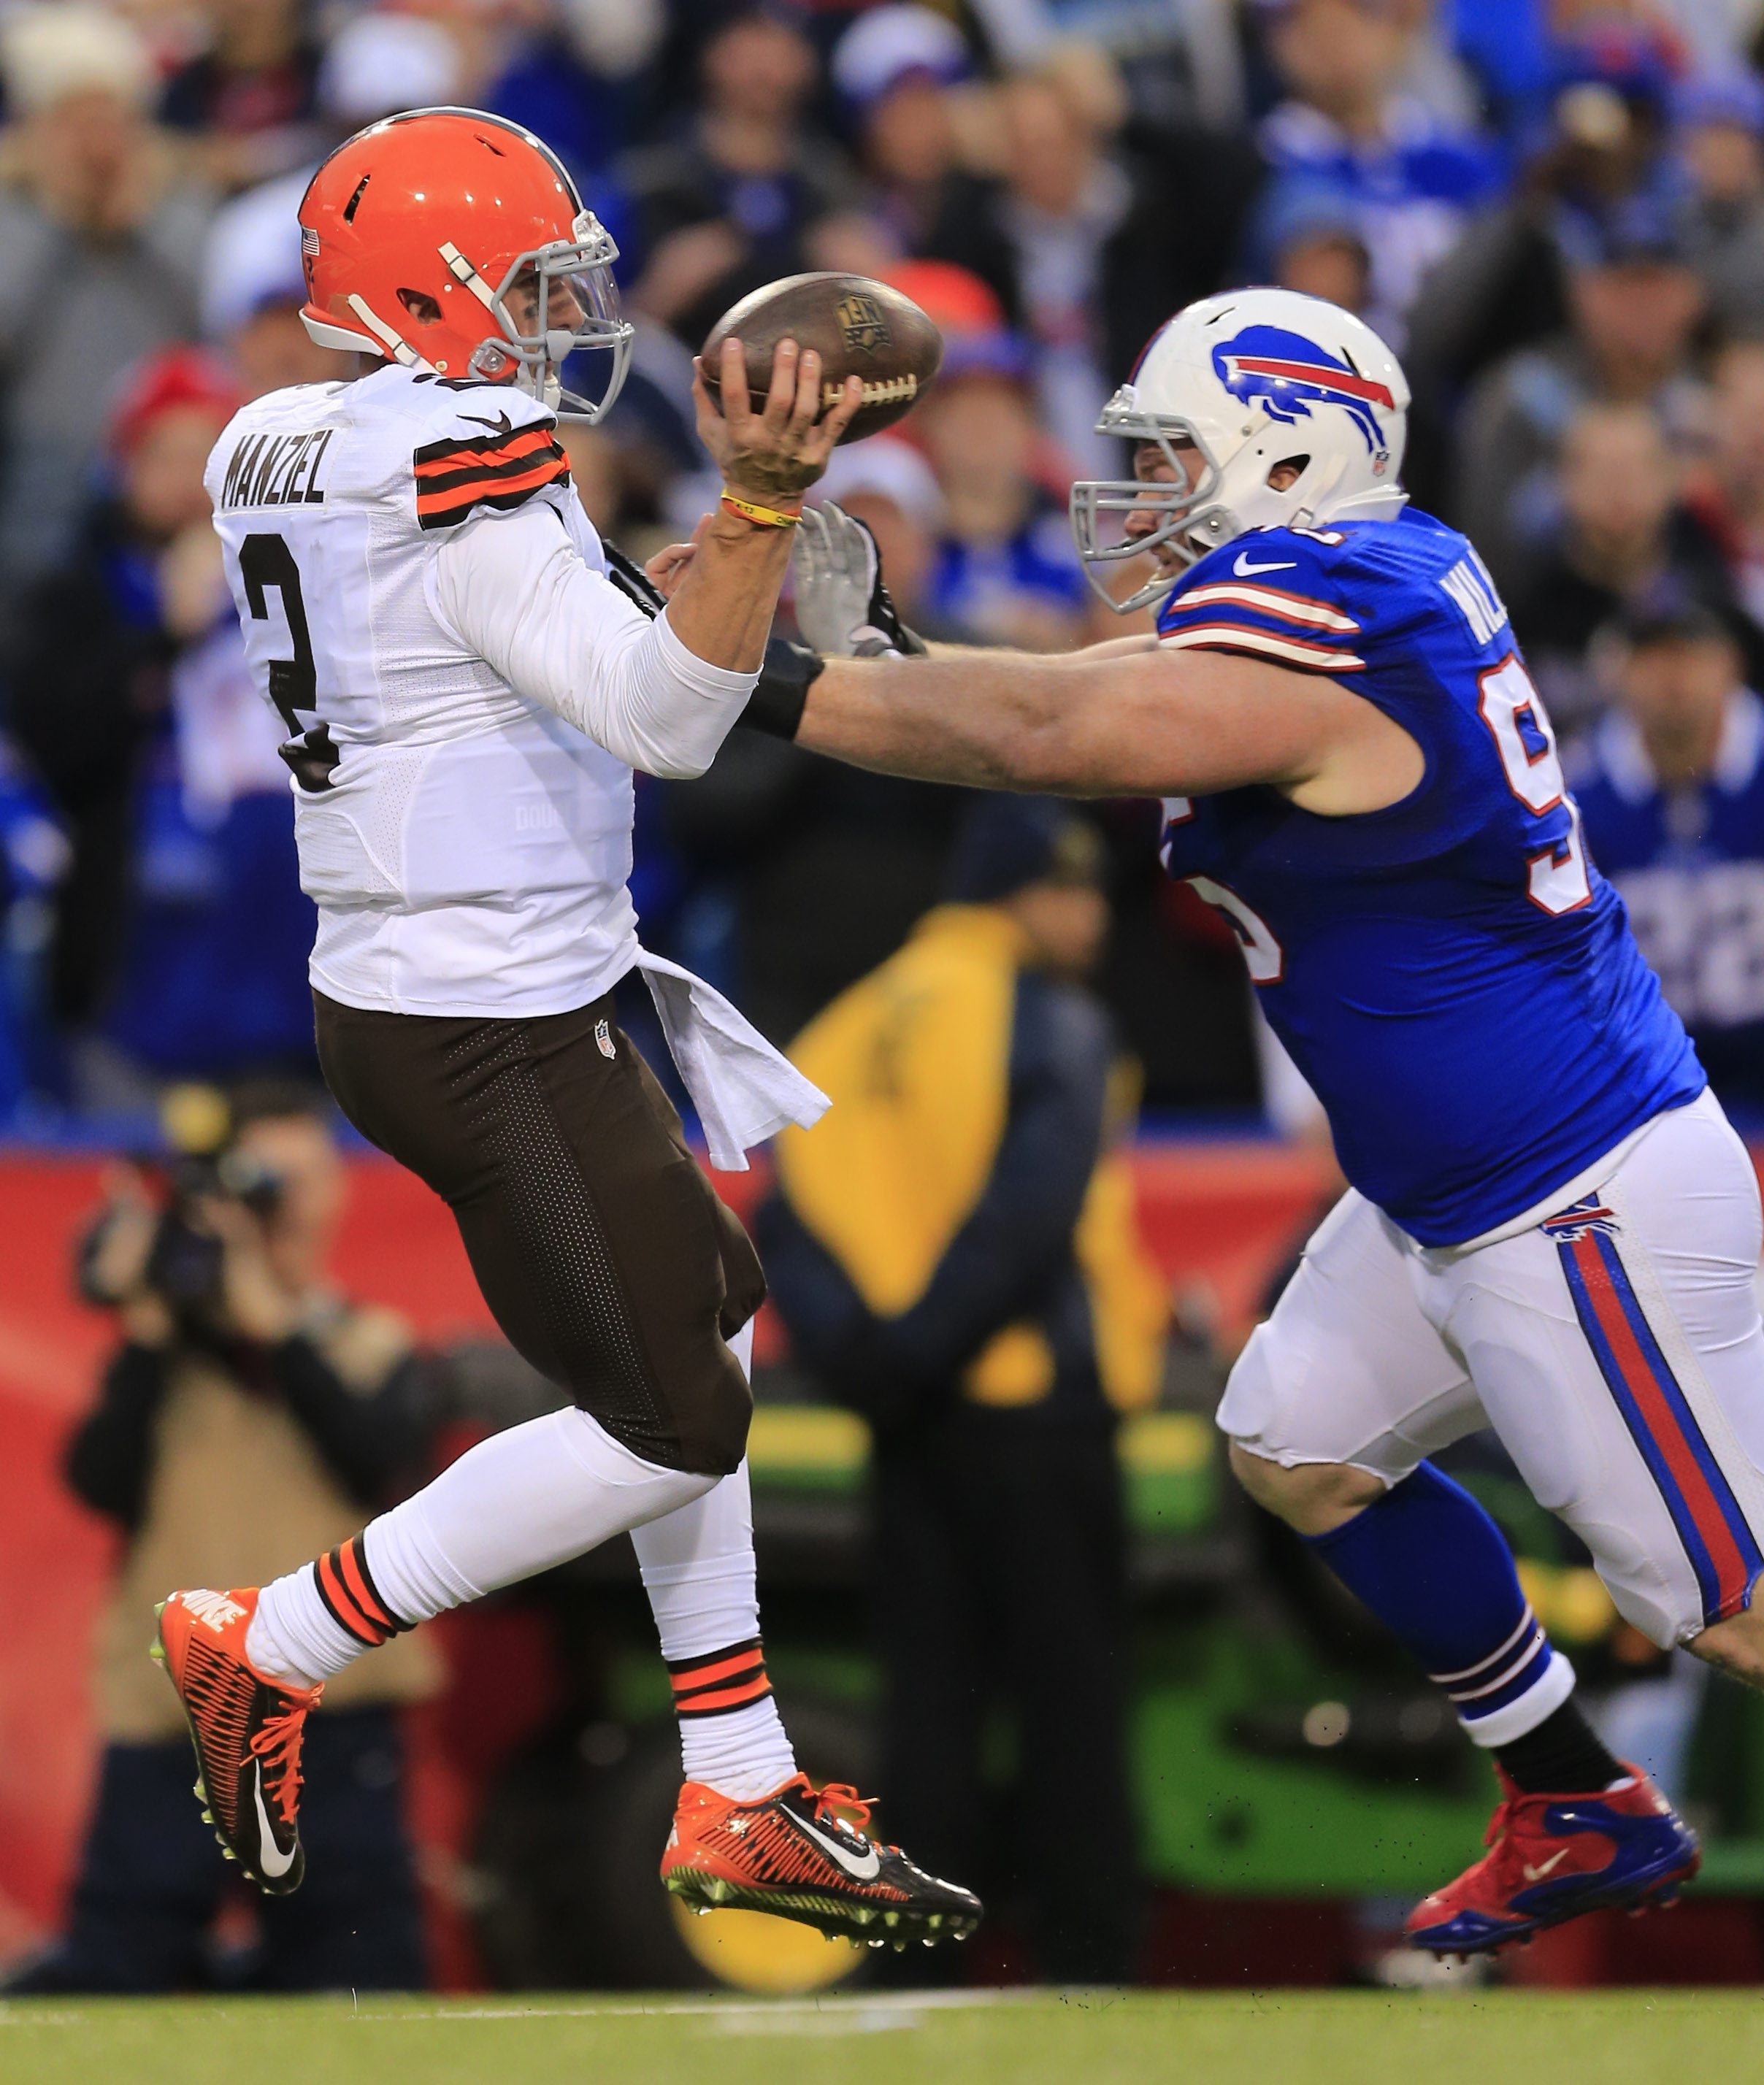 Williams has outlasted many highly rated talents, like quarterback Johnny Manziel. .(Harry Scull Jr./Buffalo News)